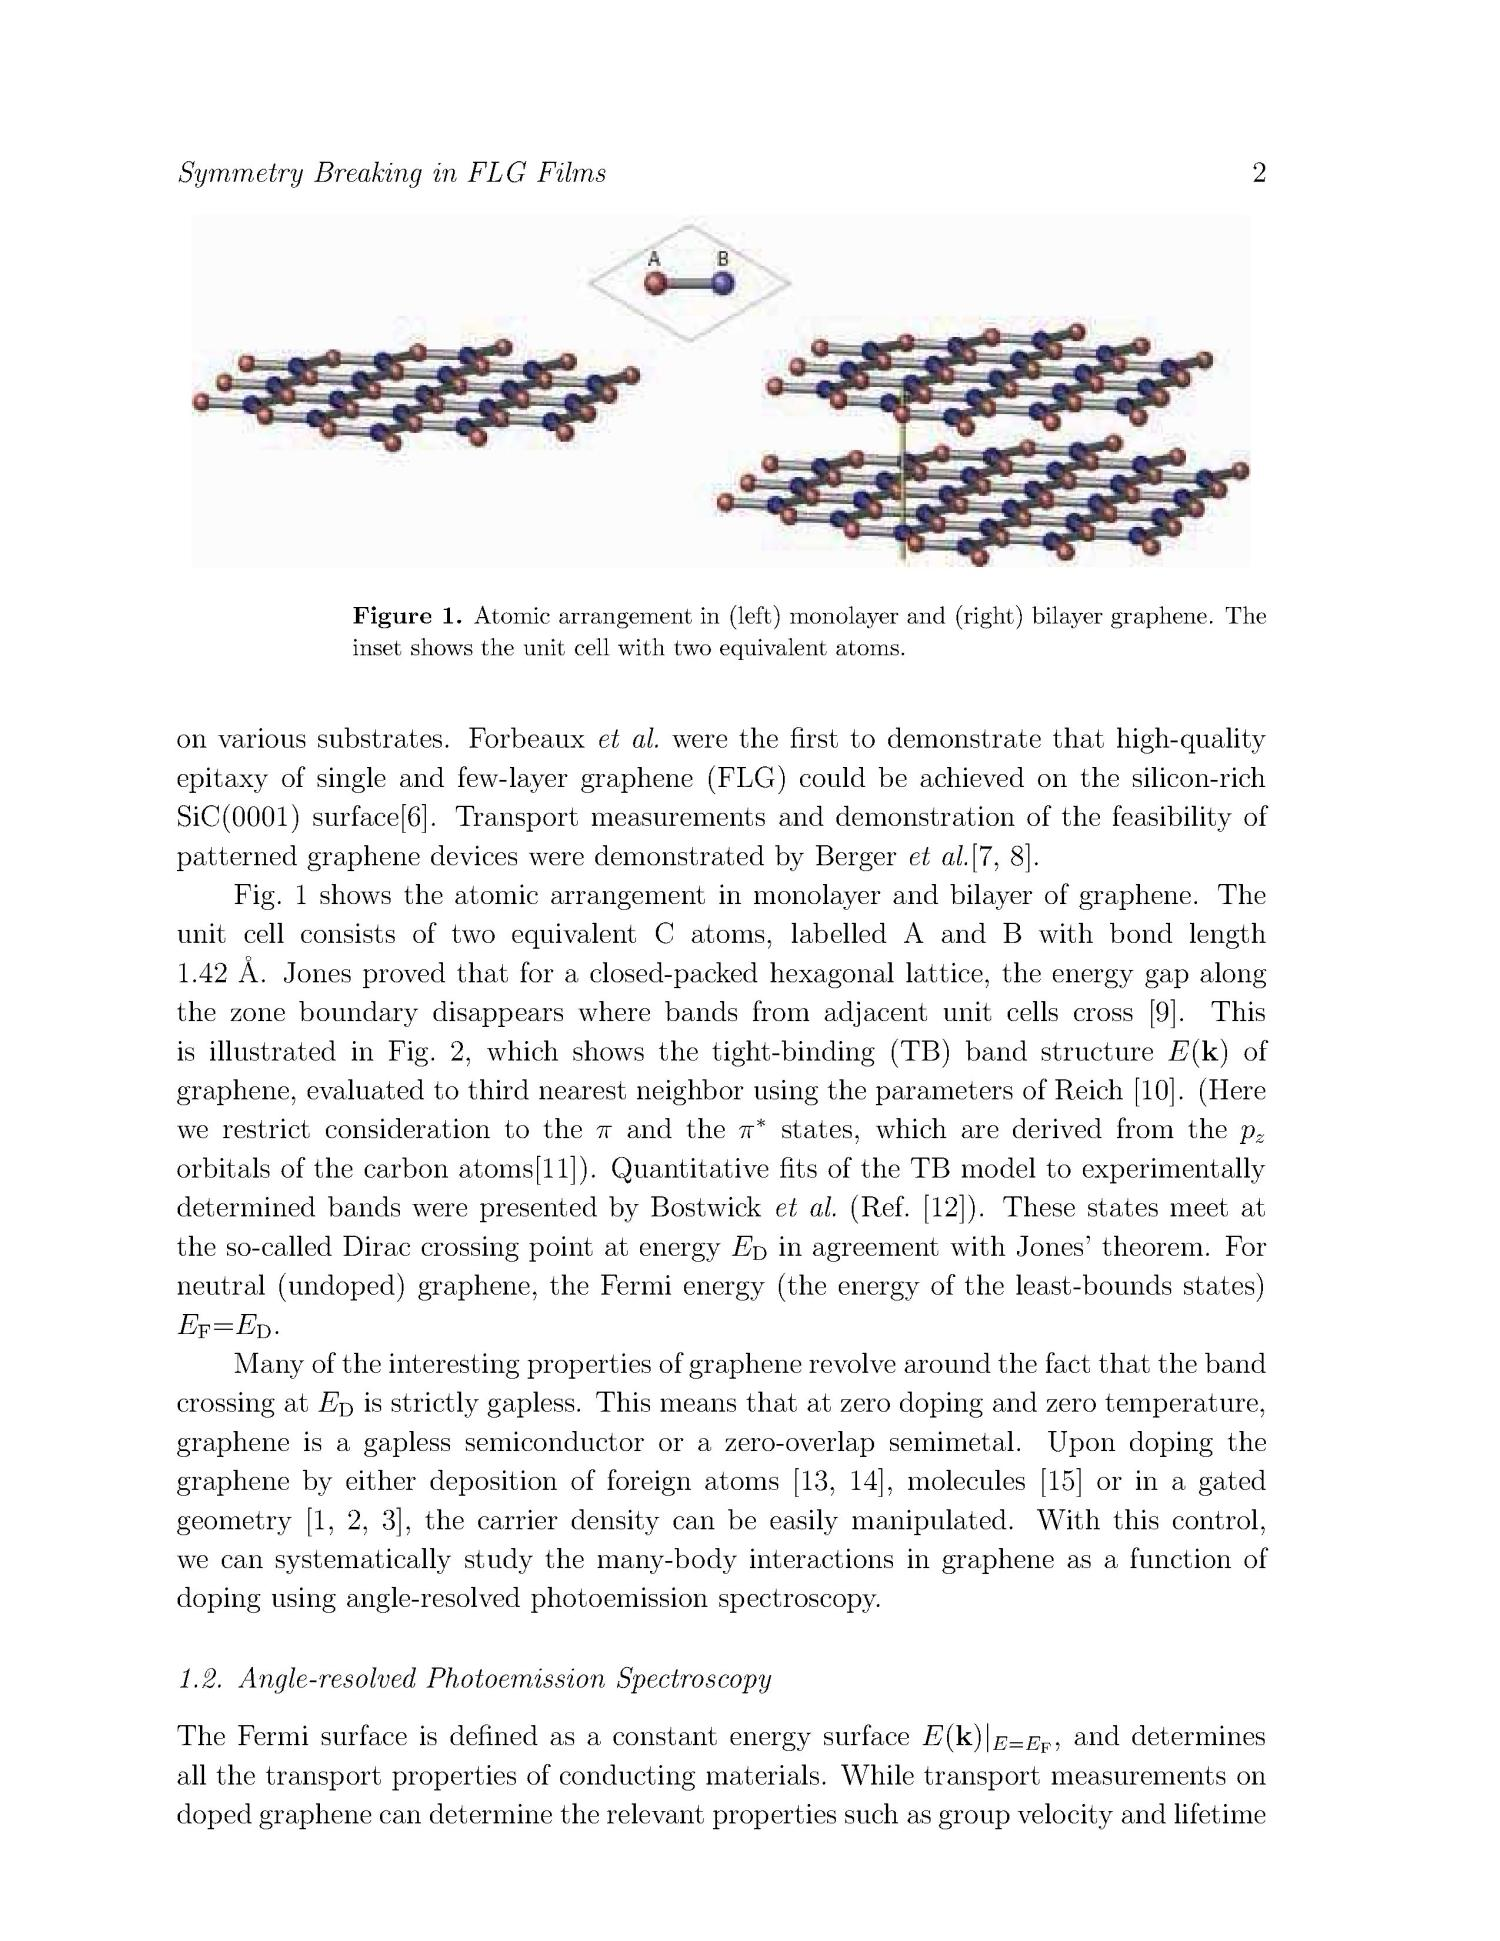 Symmetry Breaking in Few Layer Graphene Films                                                                                                      [Sequence #]: 2 of 23